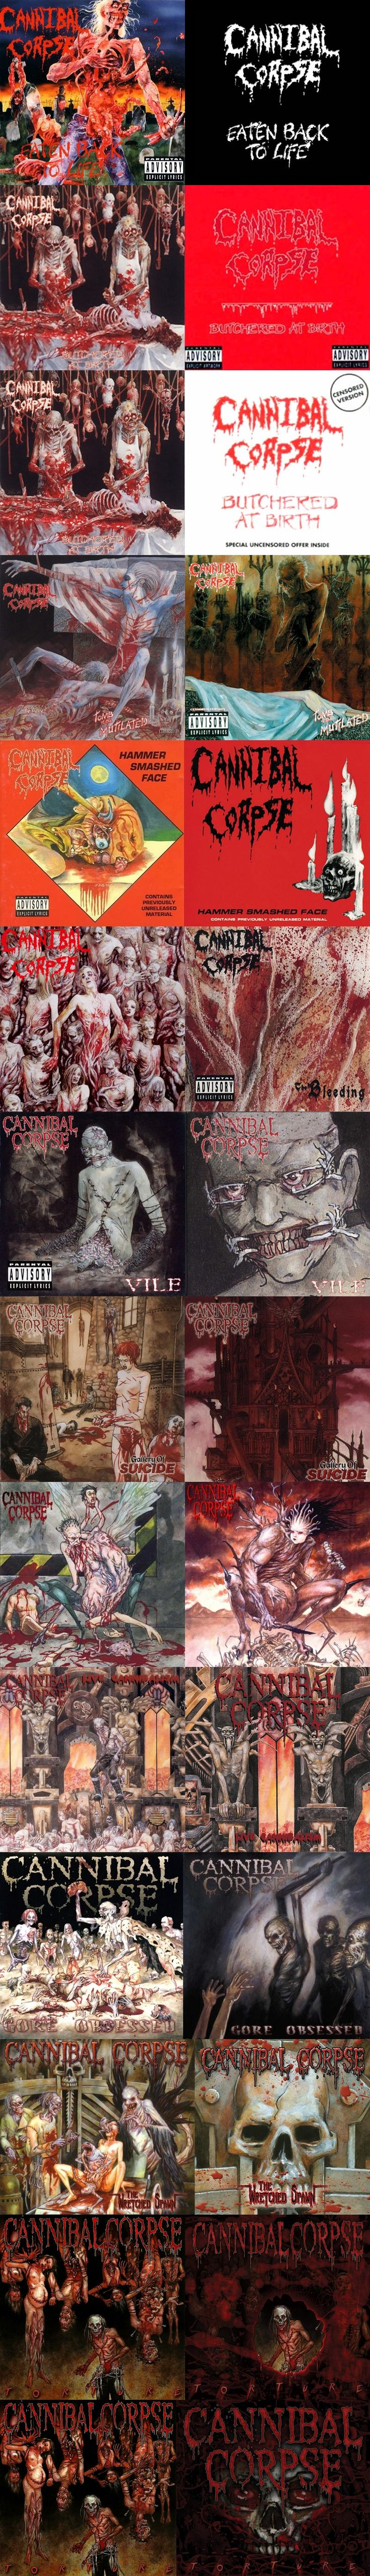 Cannibal Corpse - uncensored and censored versions of their album covers. Put together - me :) P.G.